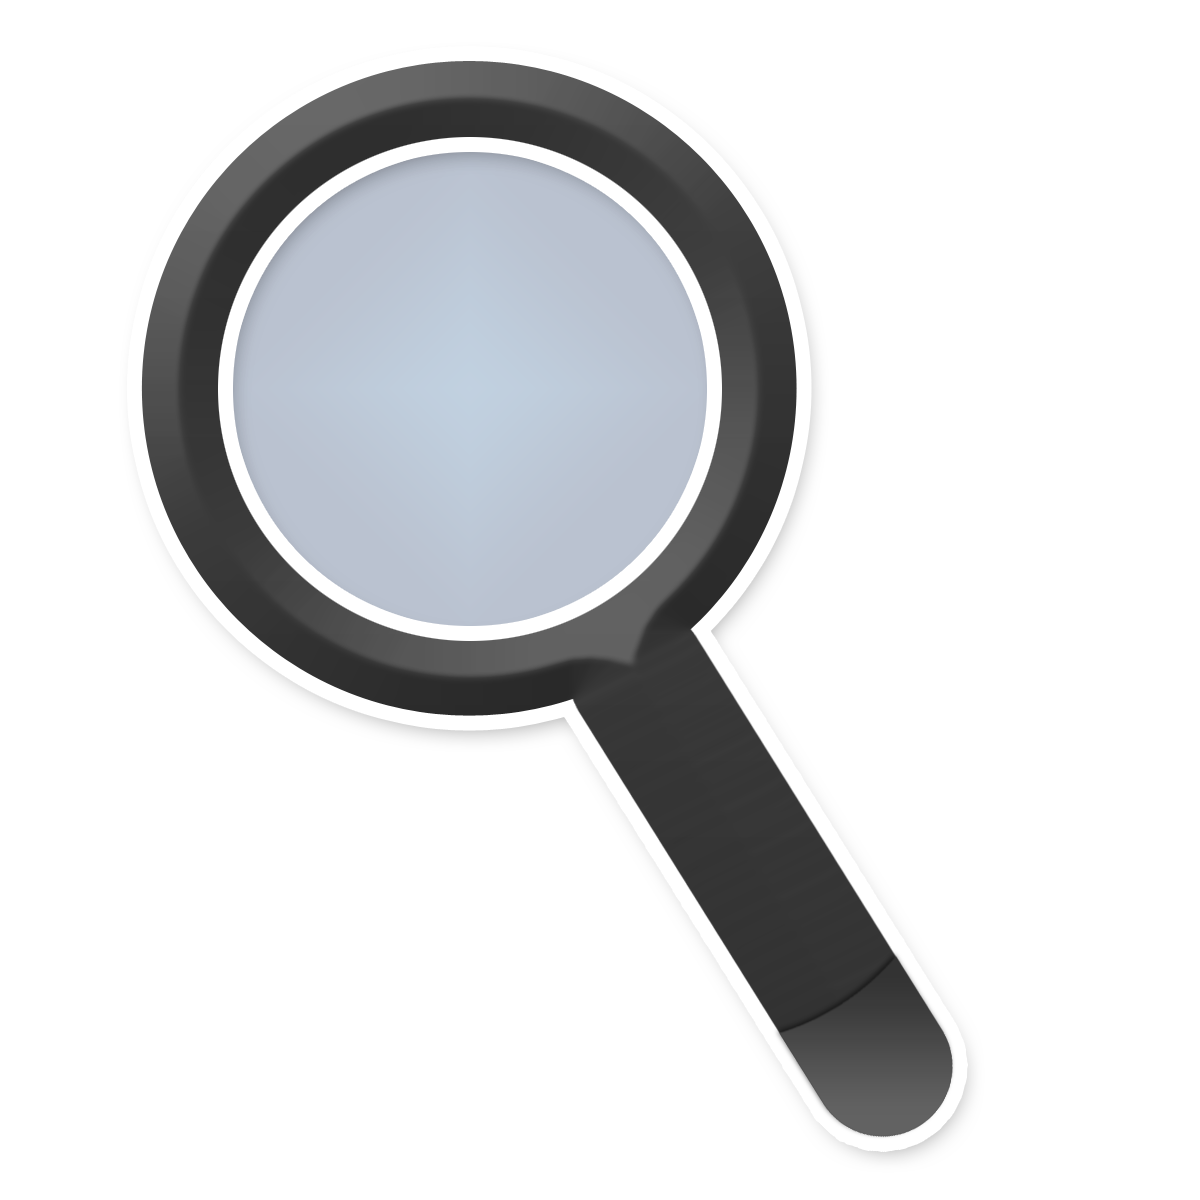 Free Magnifying Glass Vector image #26759